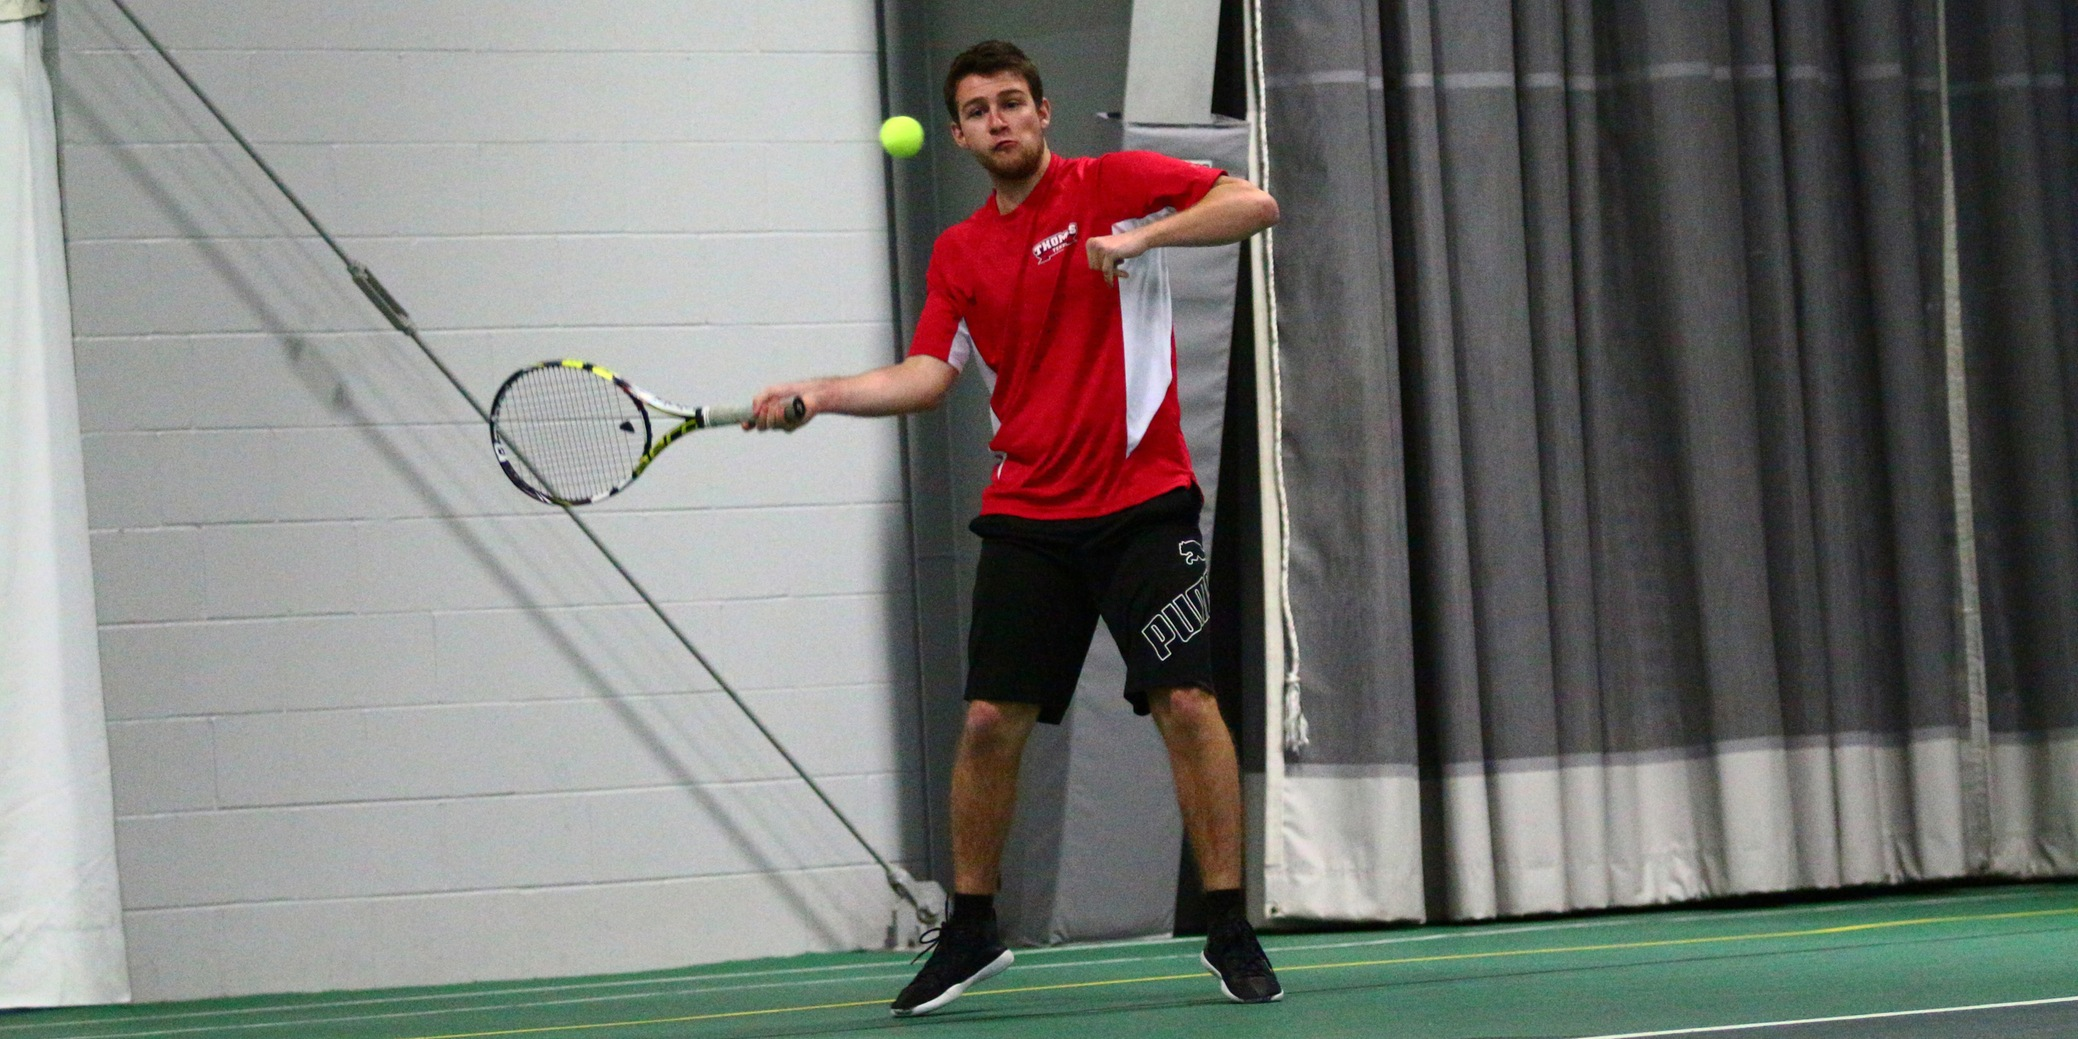 FIDDLEHEAD FOCUS: Fort Kent retires Chasse tennis jersey in Warrior first